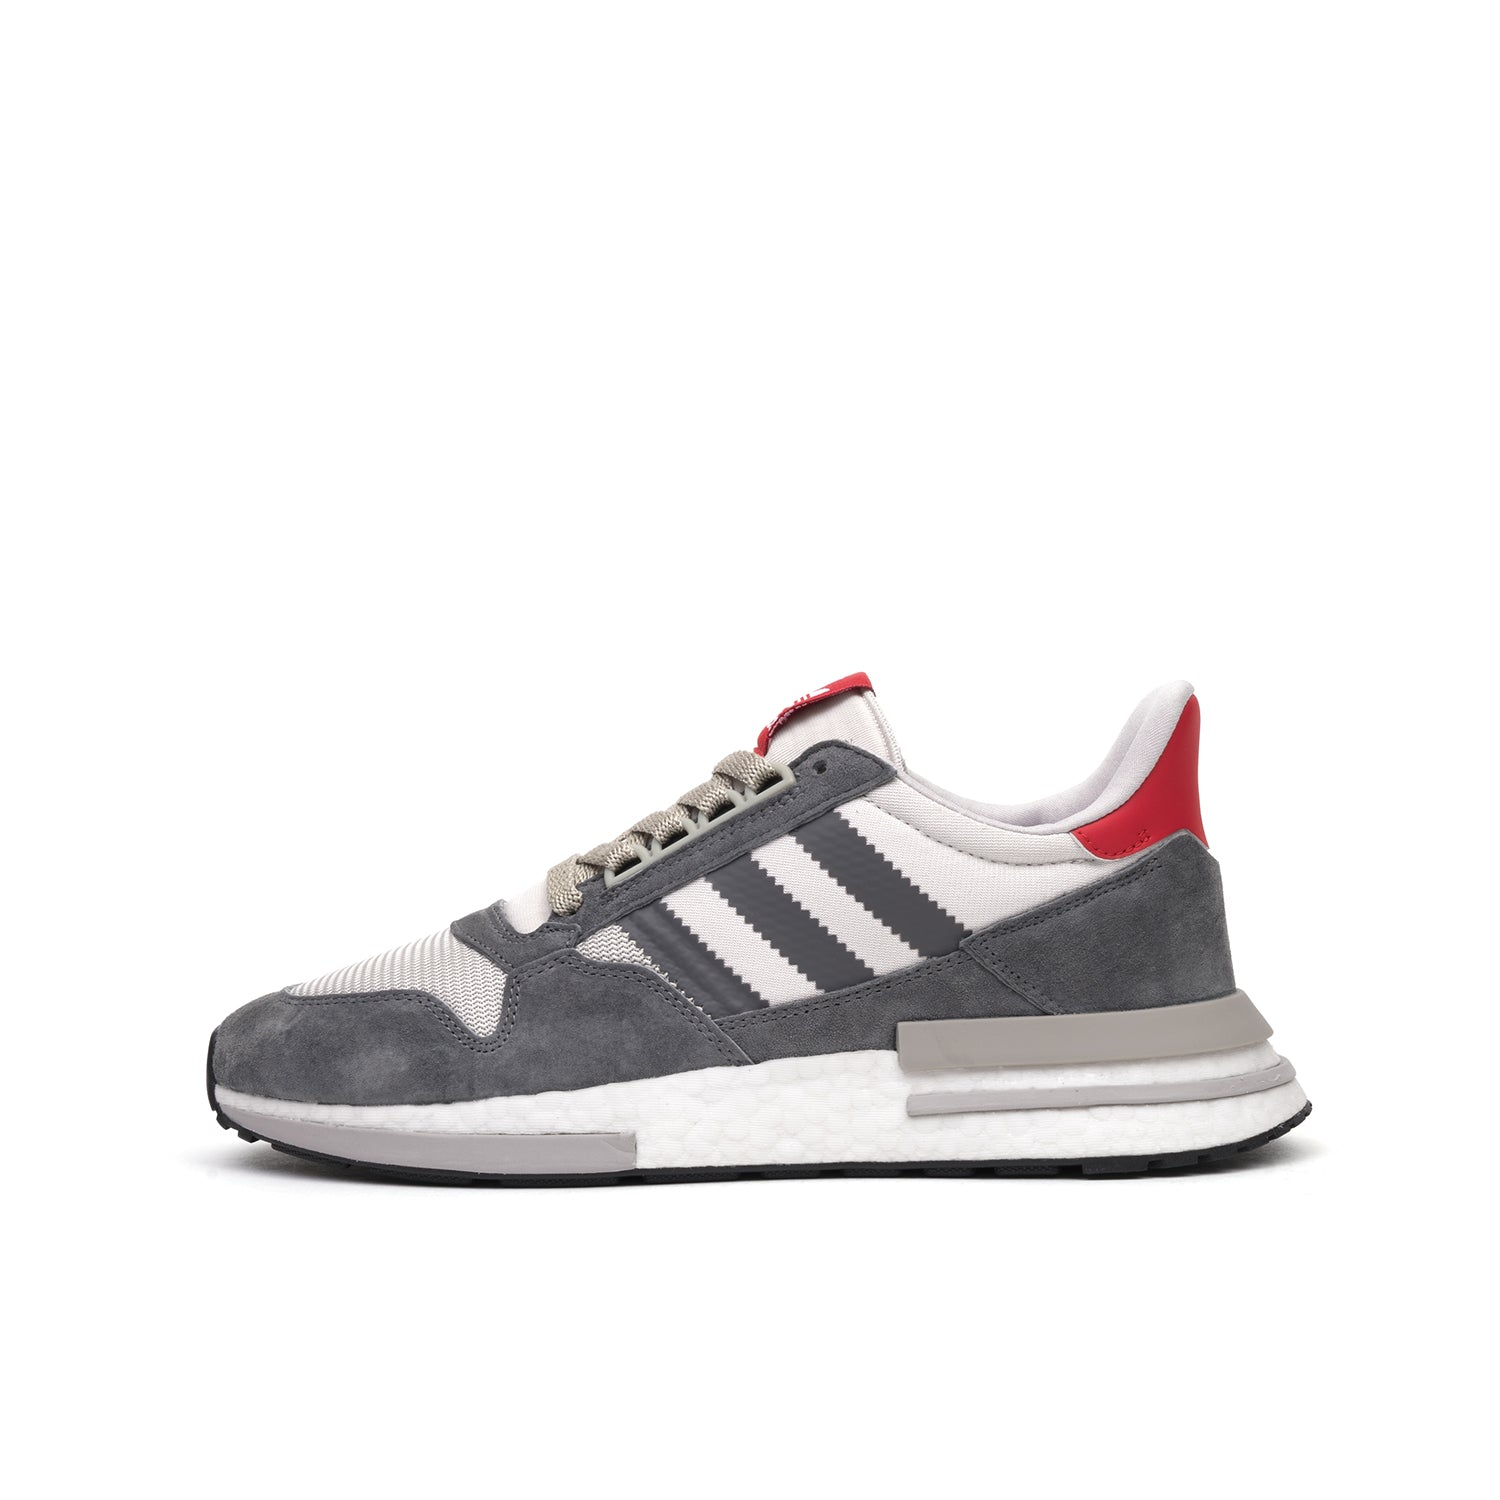 8f916a48c593 adidas Originals ZX 500 RM Grey Four  White – Concrete